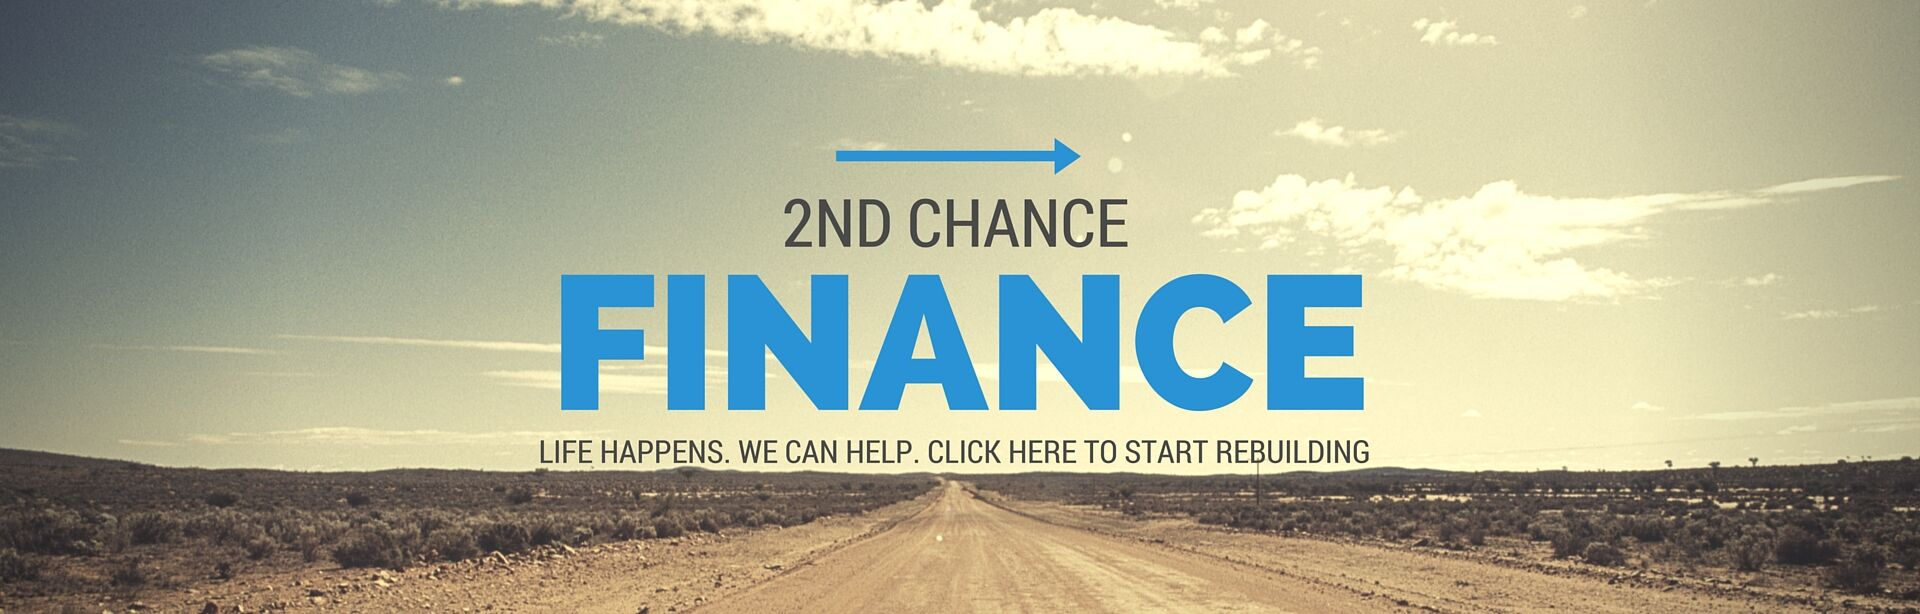 2nd Chance Finance